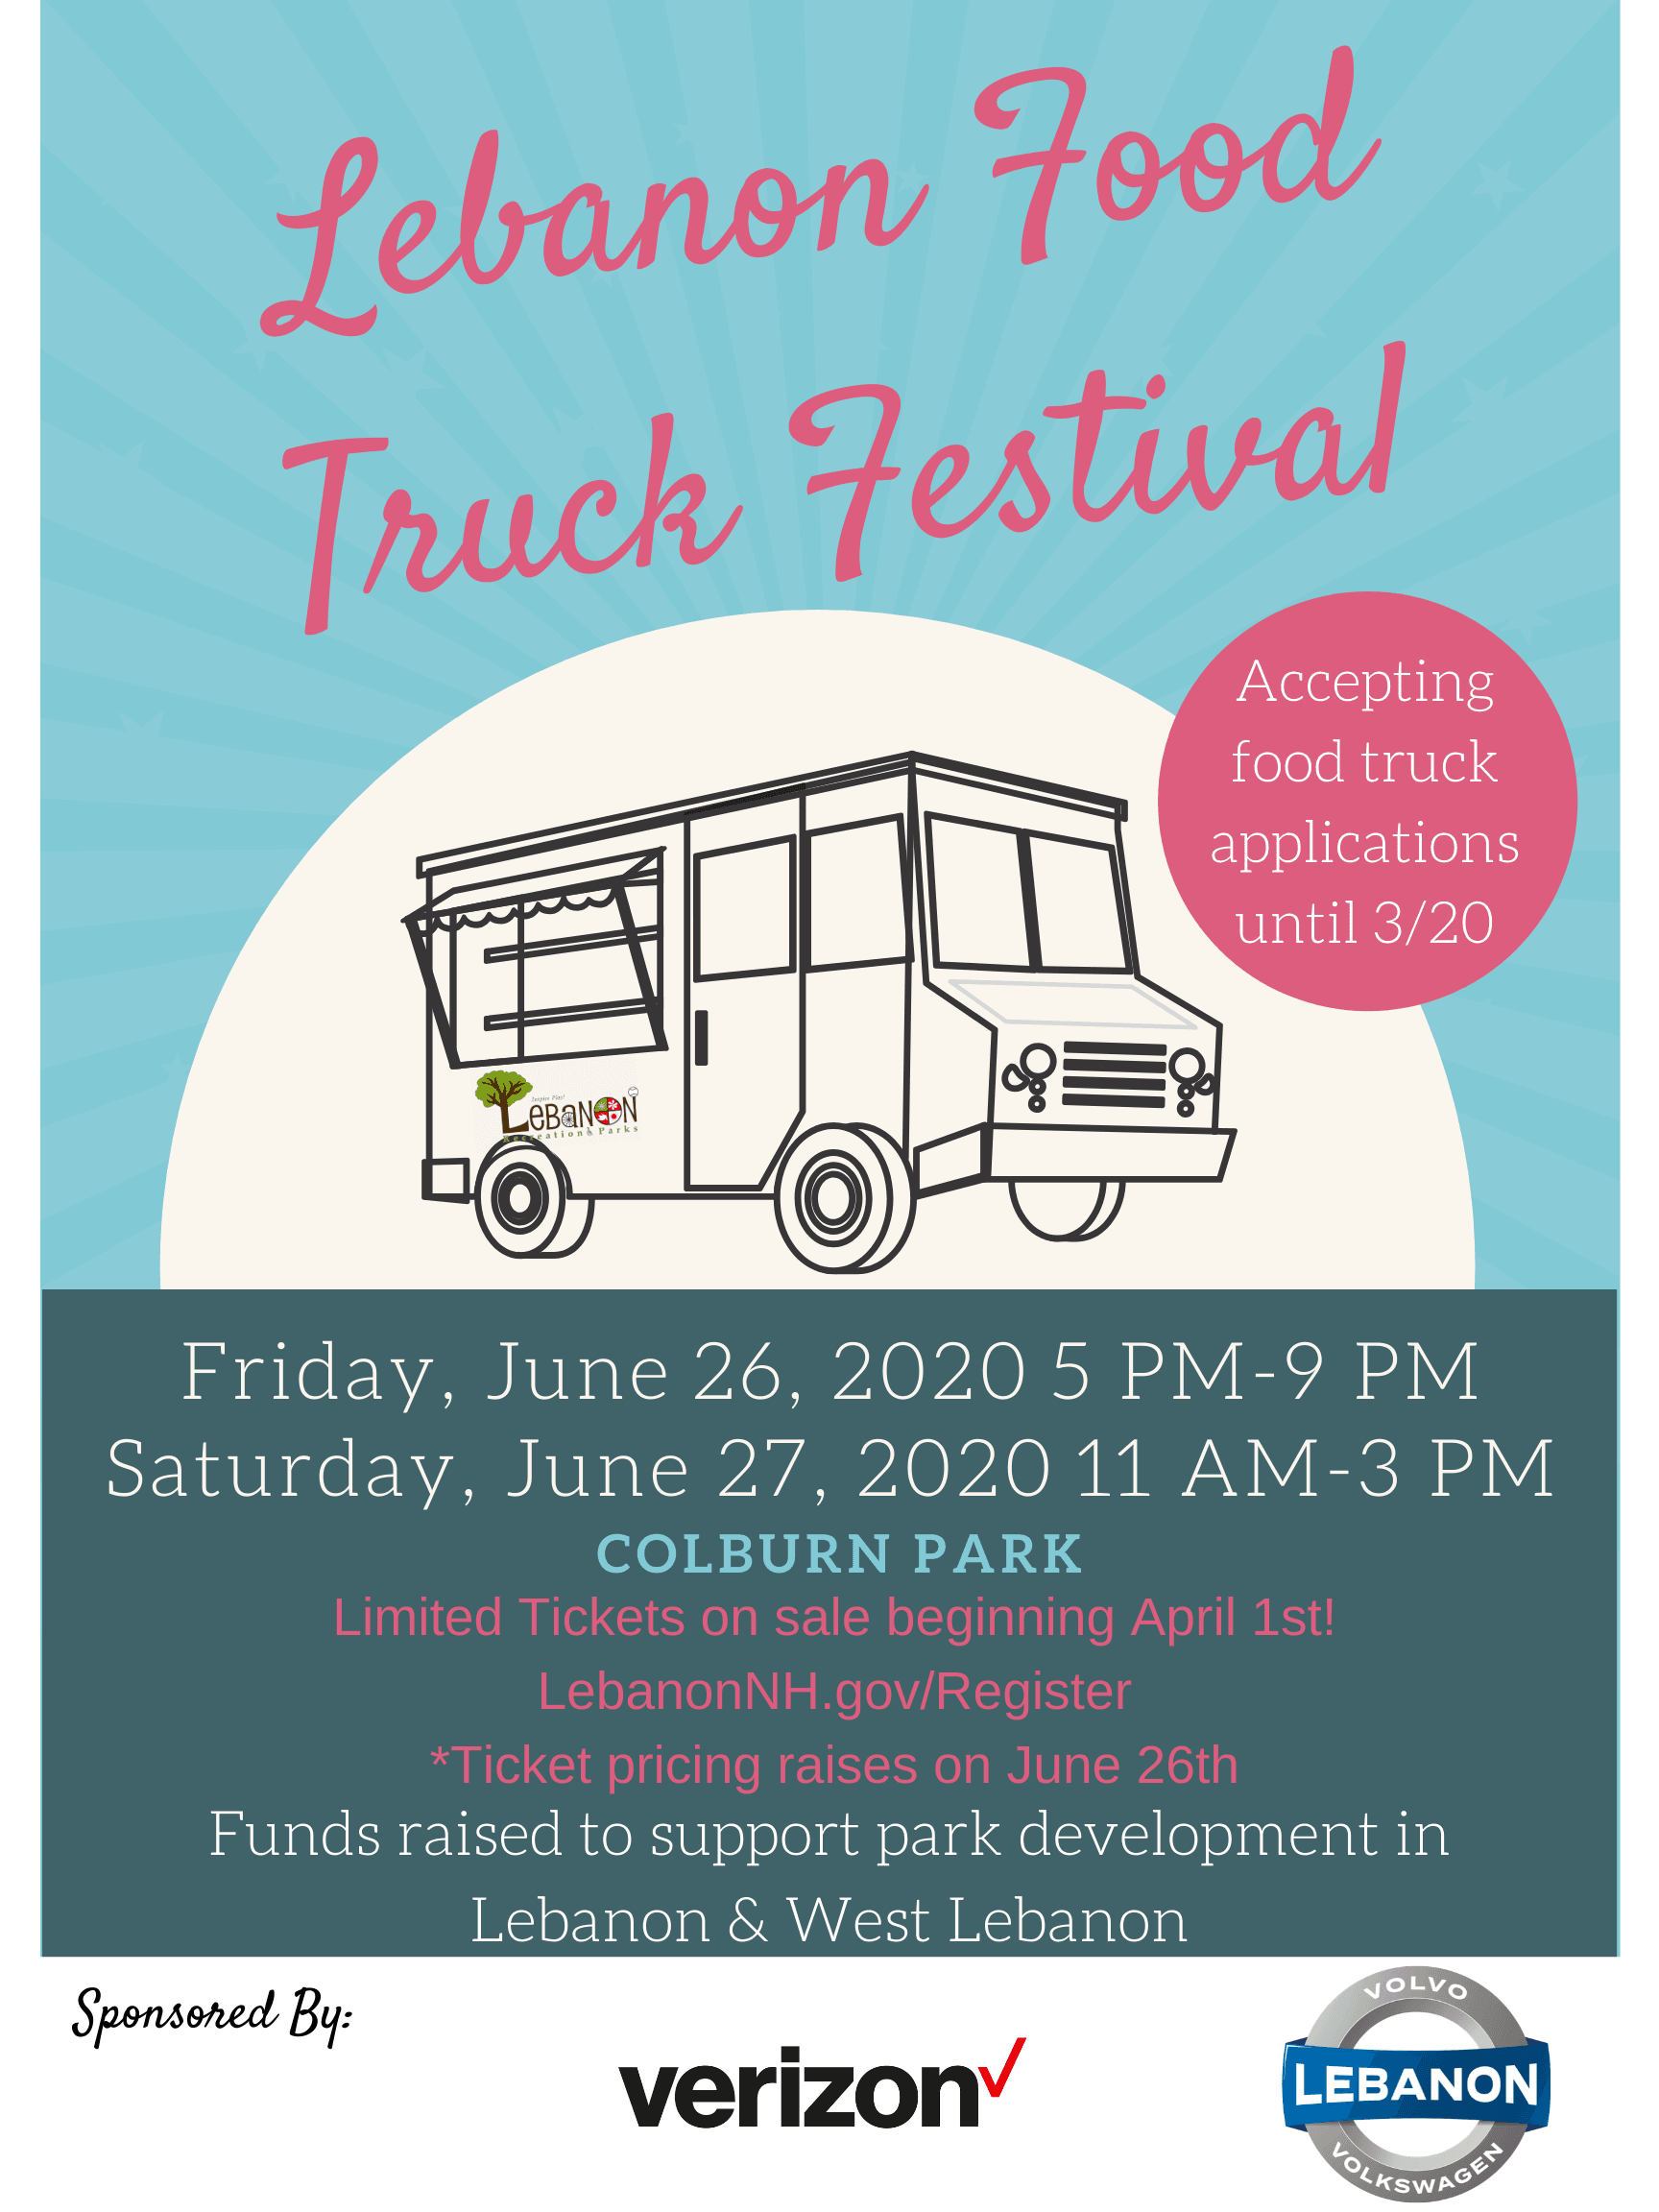 Lebanon Food Truck Festival Flyer